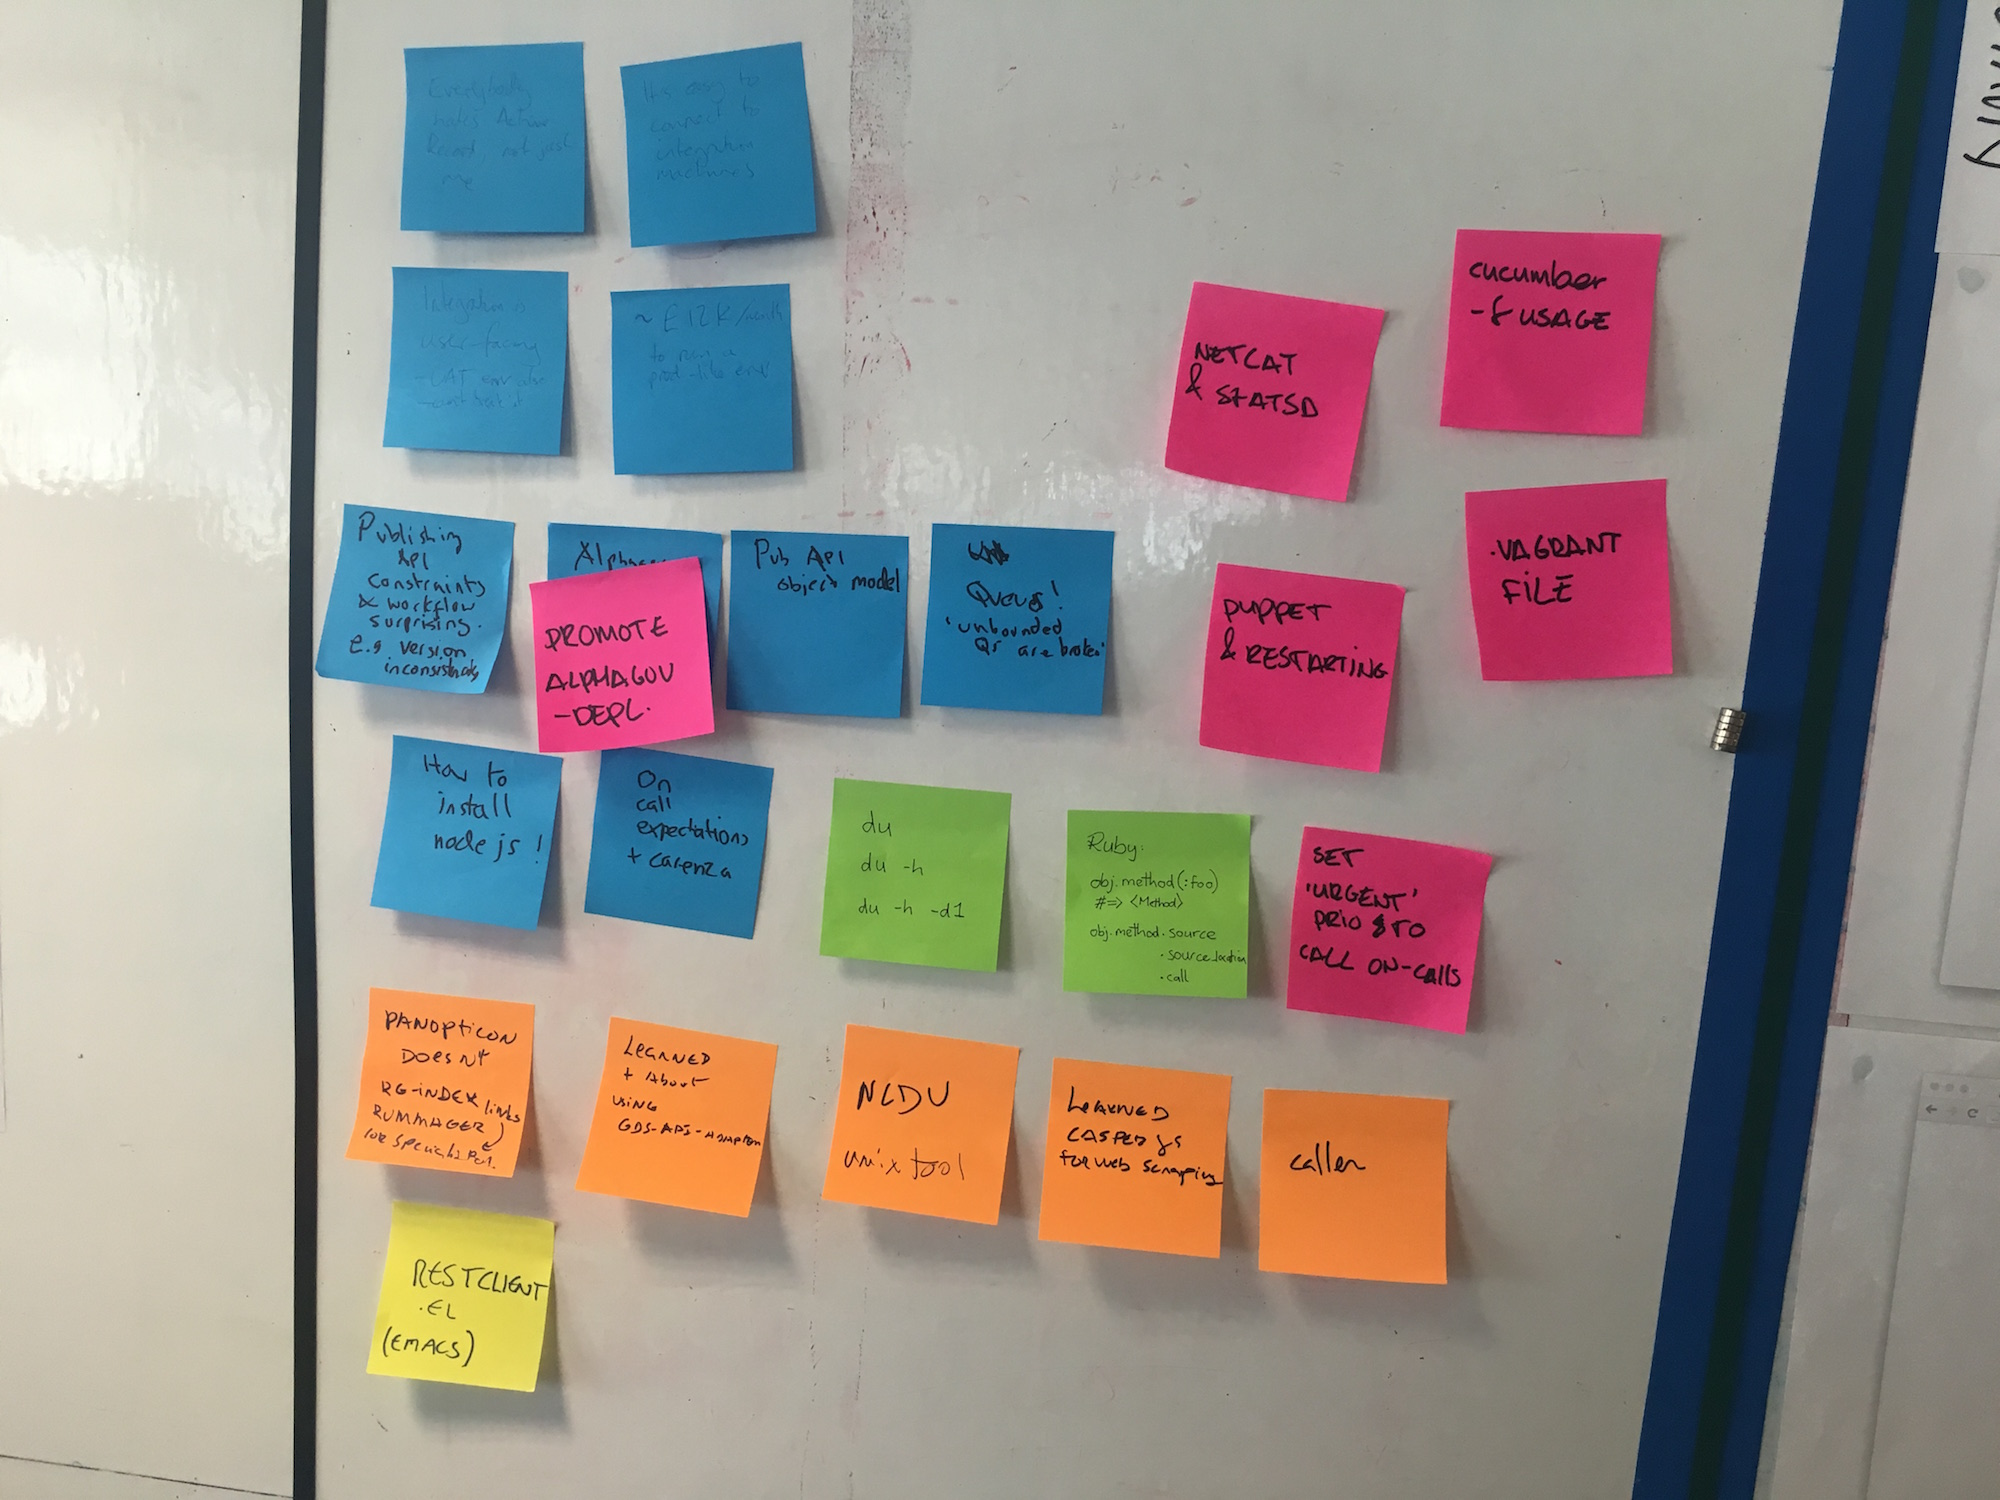 A picture of our whiteboard with TIL post-its